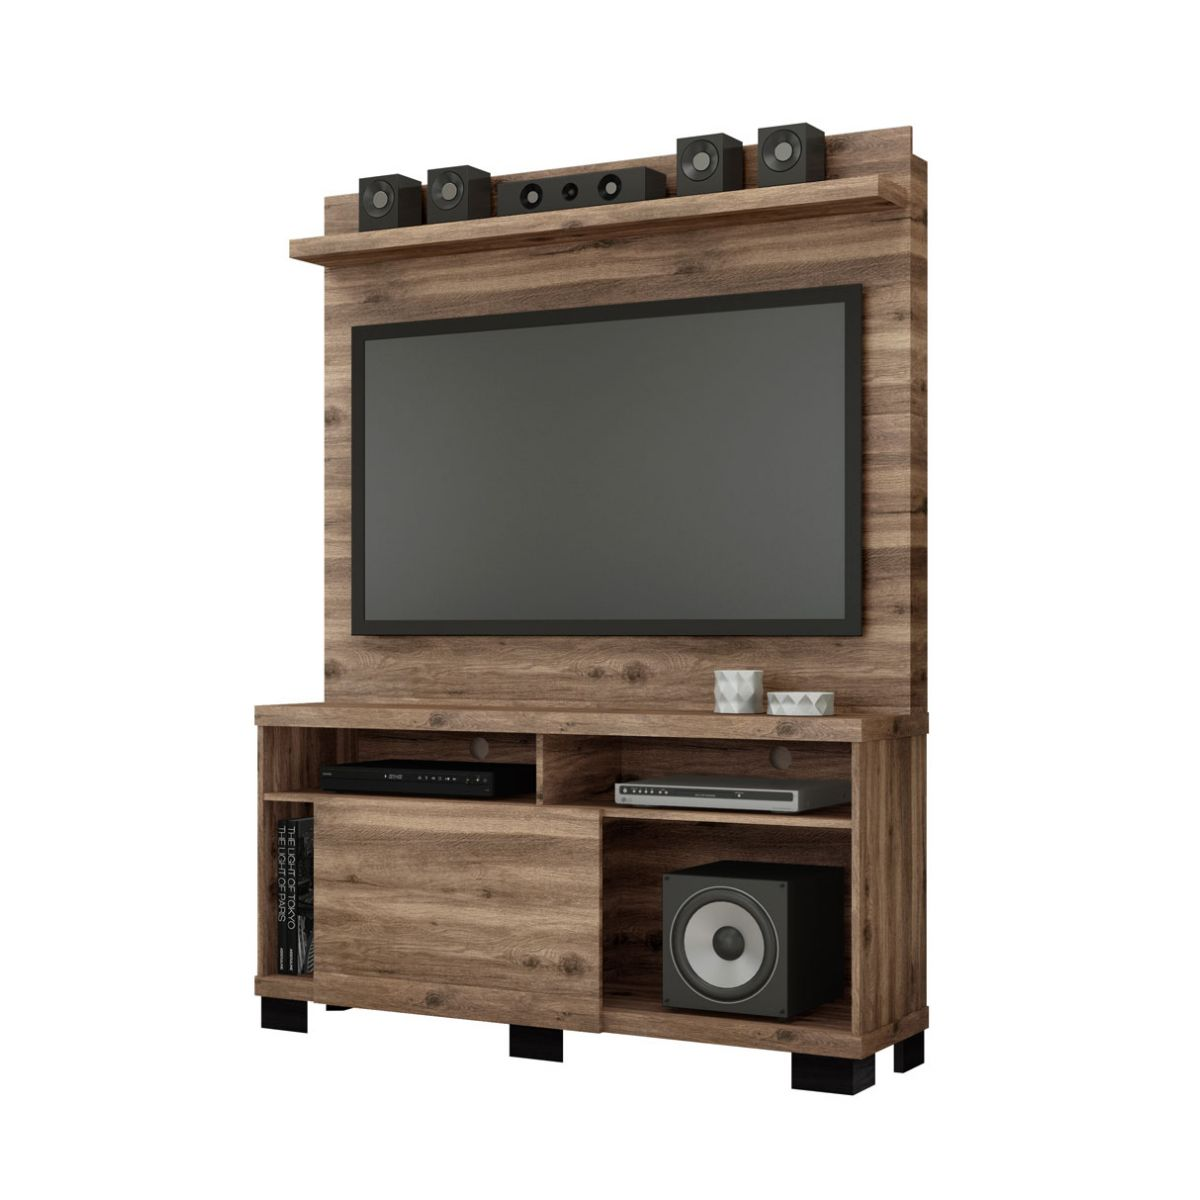 Home Theater Ariel Nature - Germai Móveis